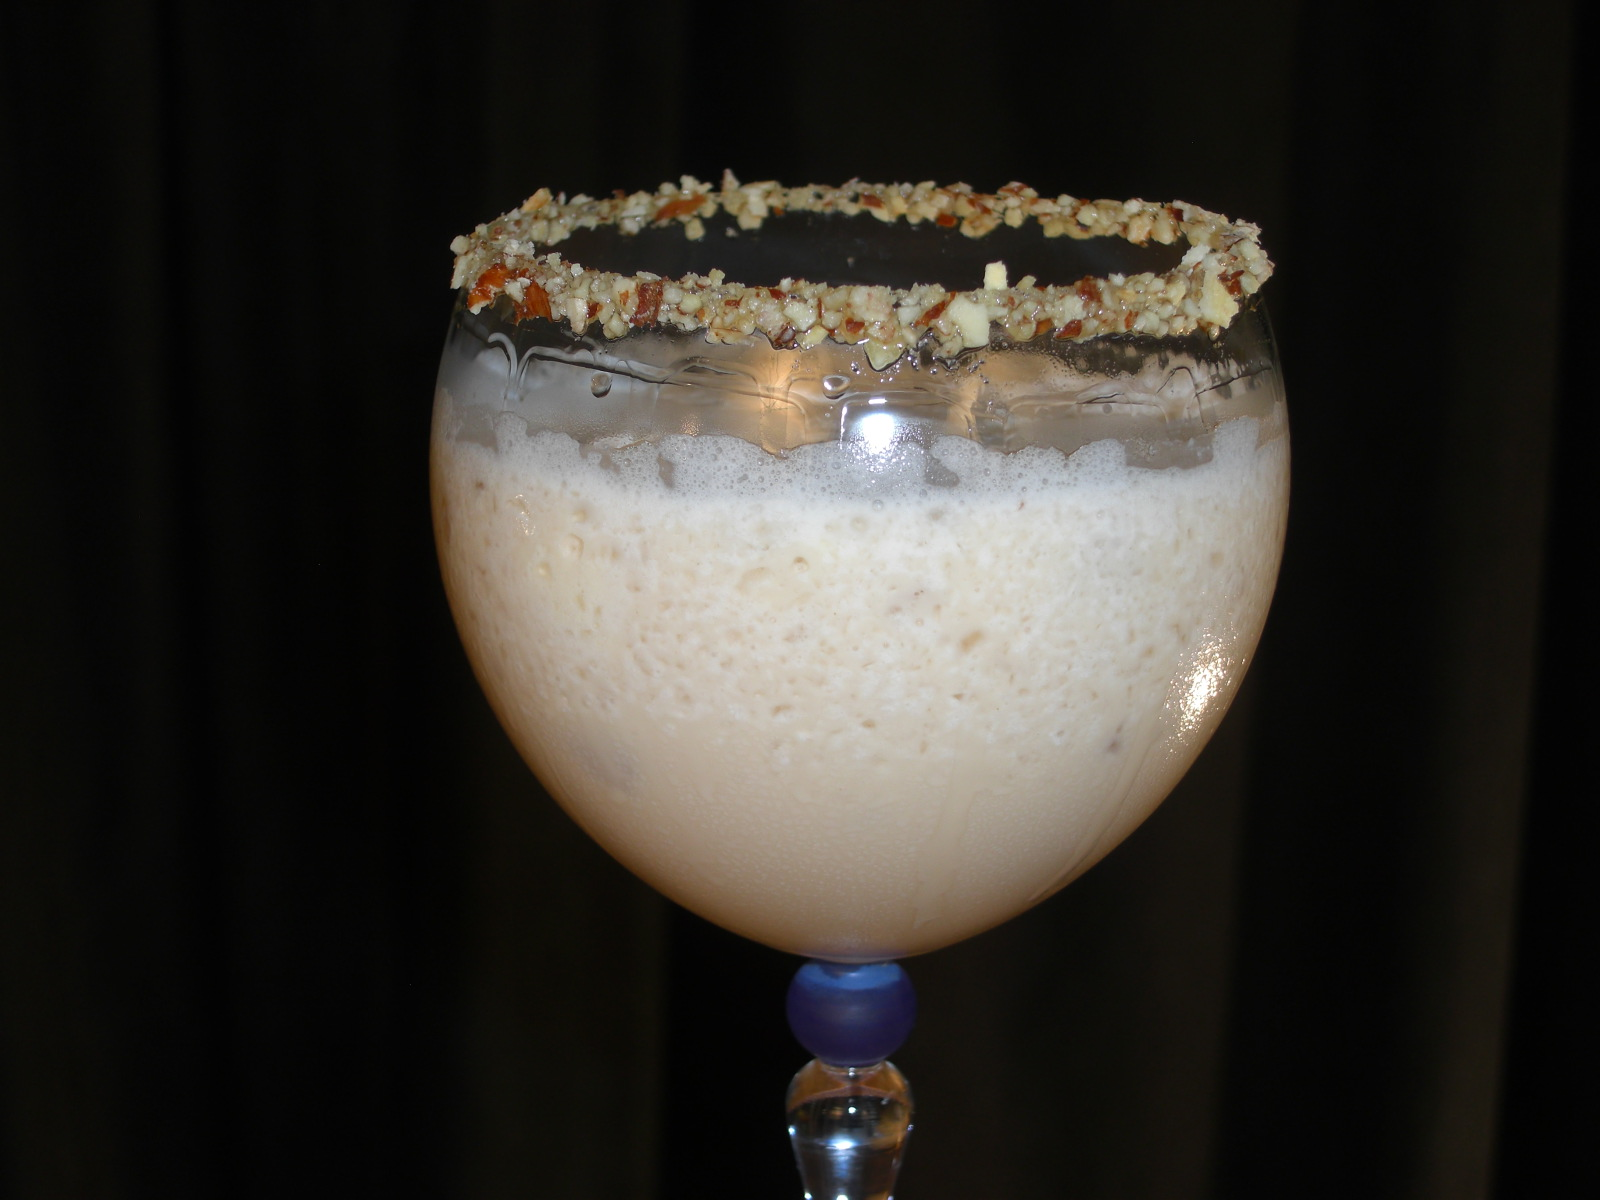 Toasted Almond Blended Ice Cream Cocktail